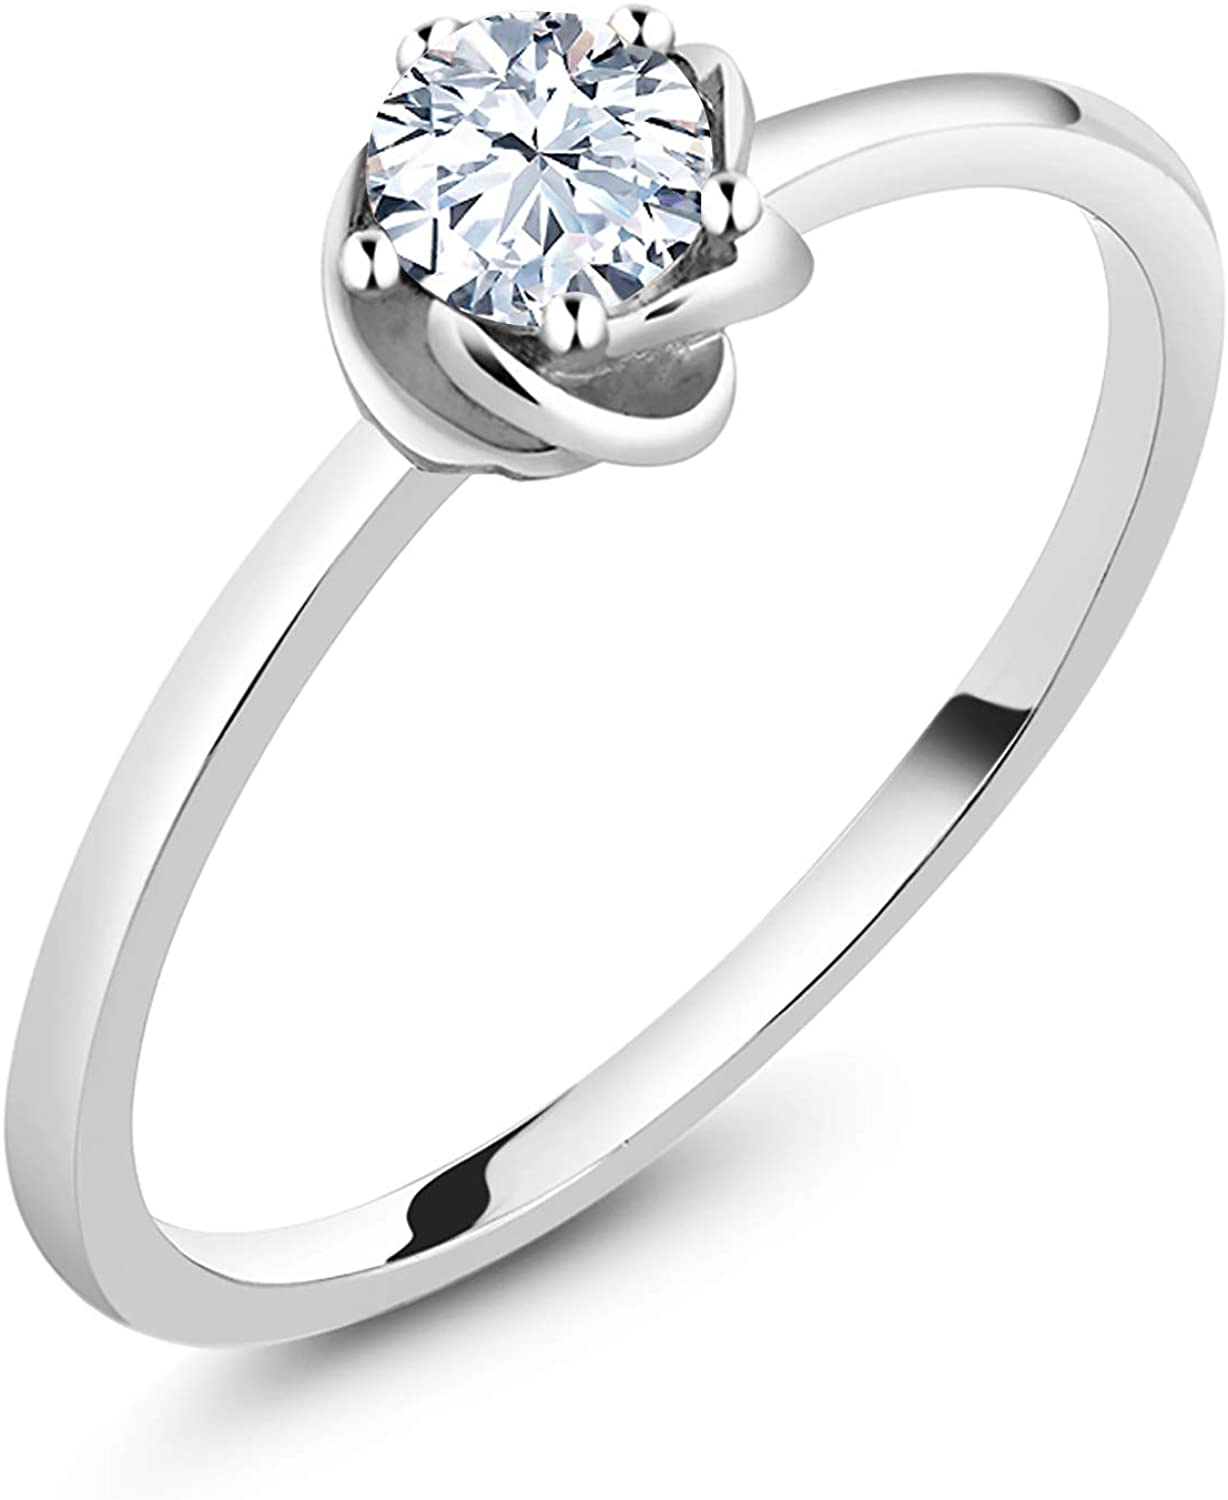 Gem Stone King 10K White Gold White Zirconia Women Engagement Ring (0.75 Ct Round, Available in size 5, 6, 7, 8, 9)